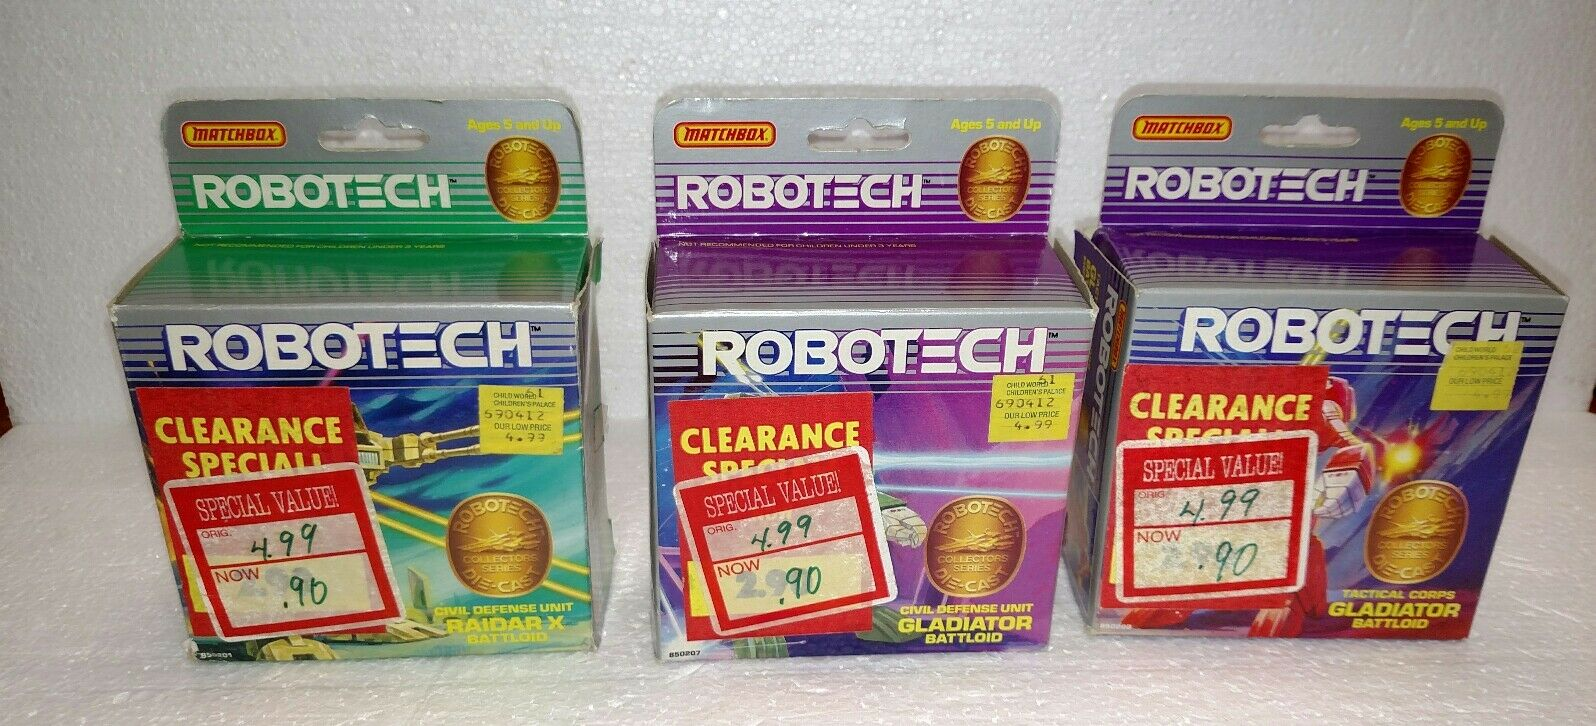 1985 MATCHBOX ROBOTECH BATTLOID LOT OF 3 IN BOX